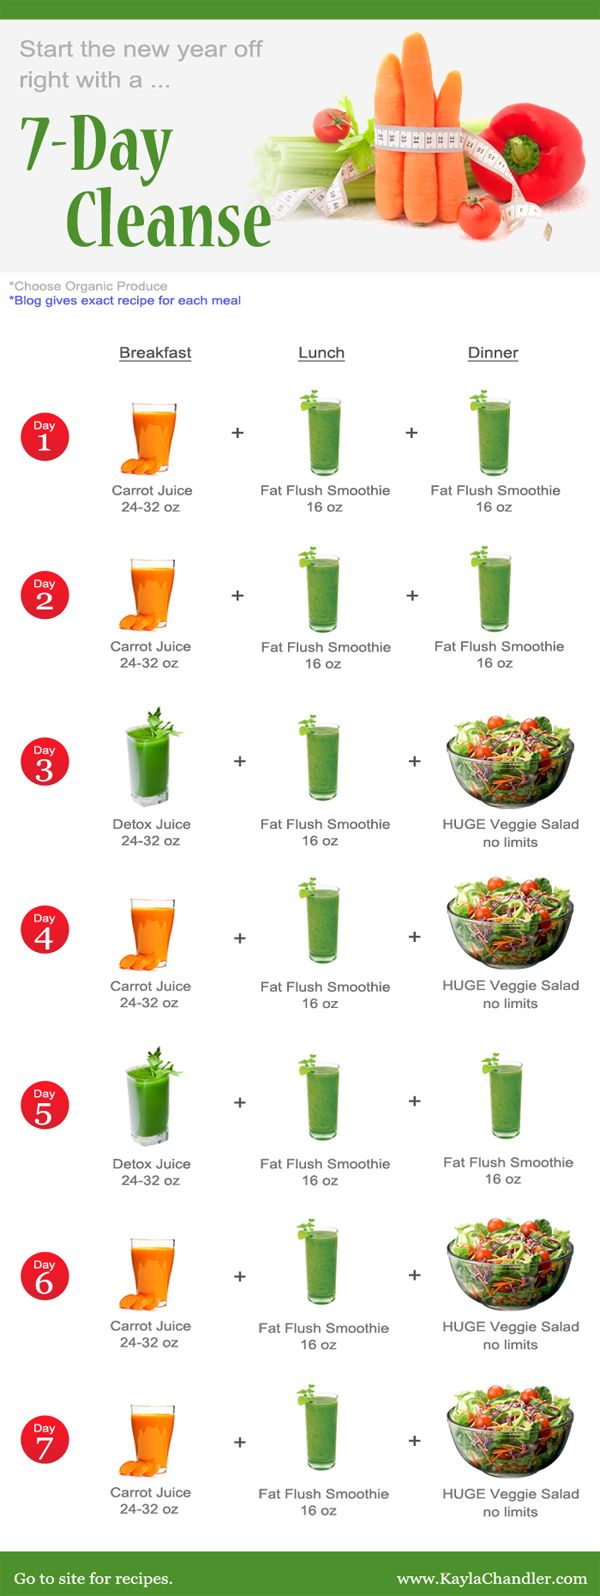 Detox | 7-Day Detox Cleanse And Lose Weight ...... Your 7-Day protocol is listed here. Lets get started!